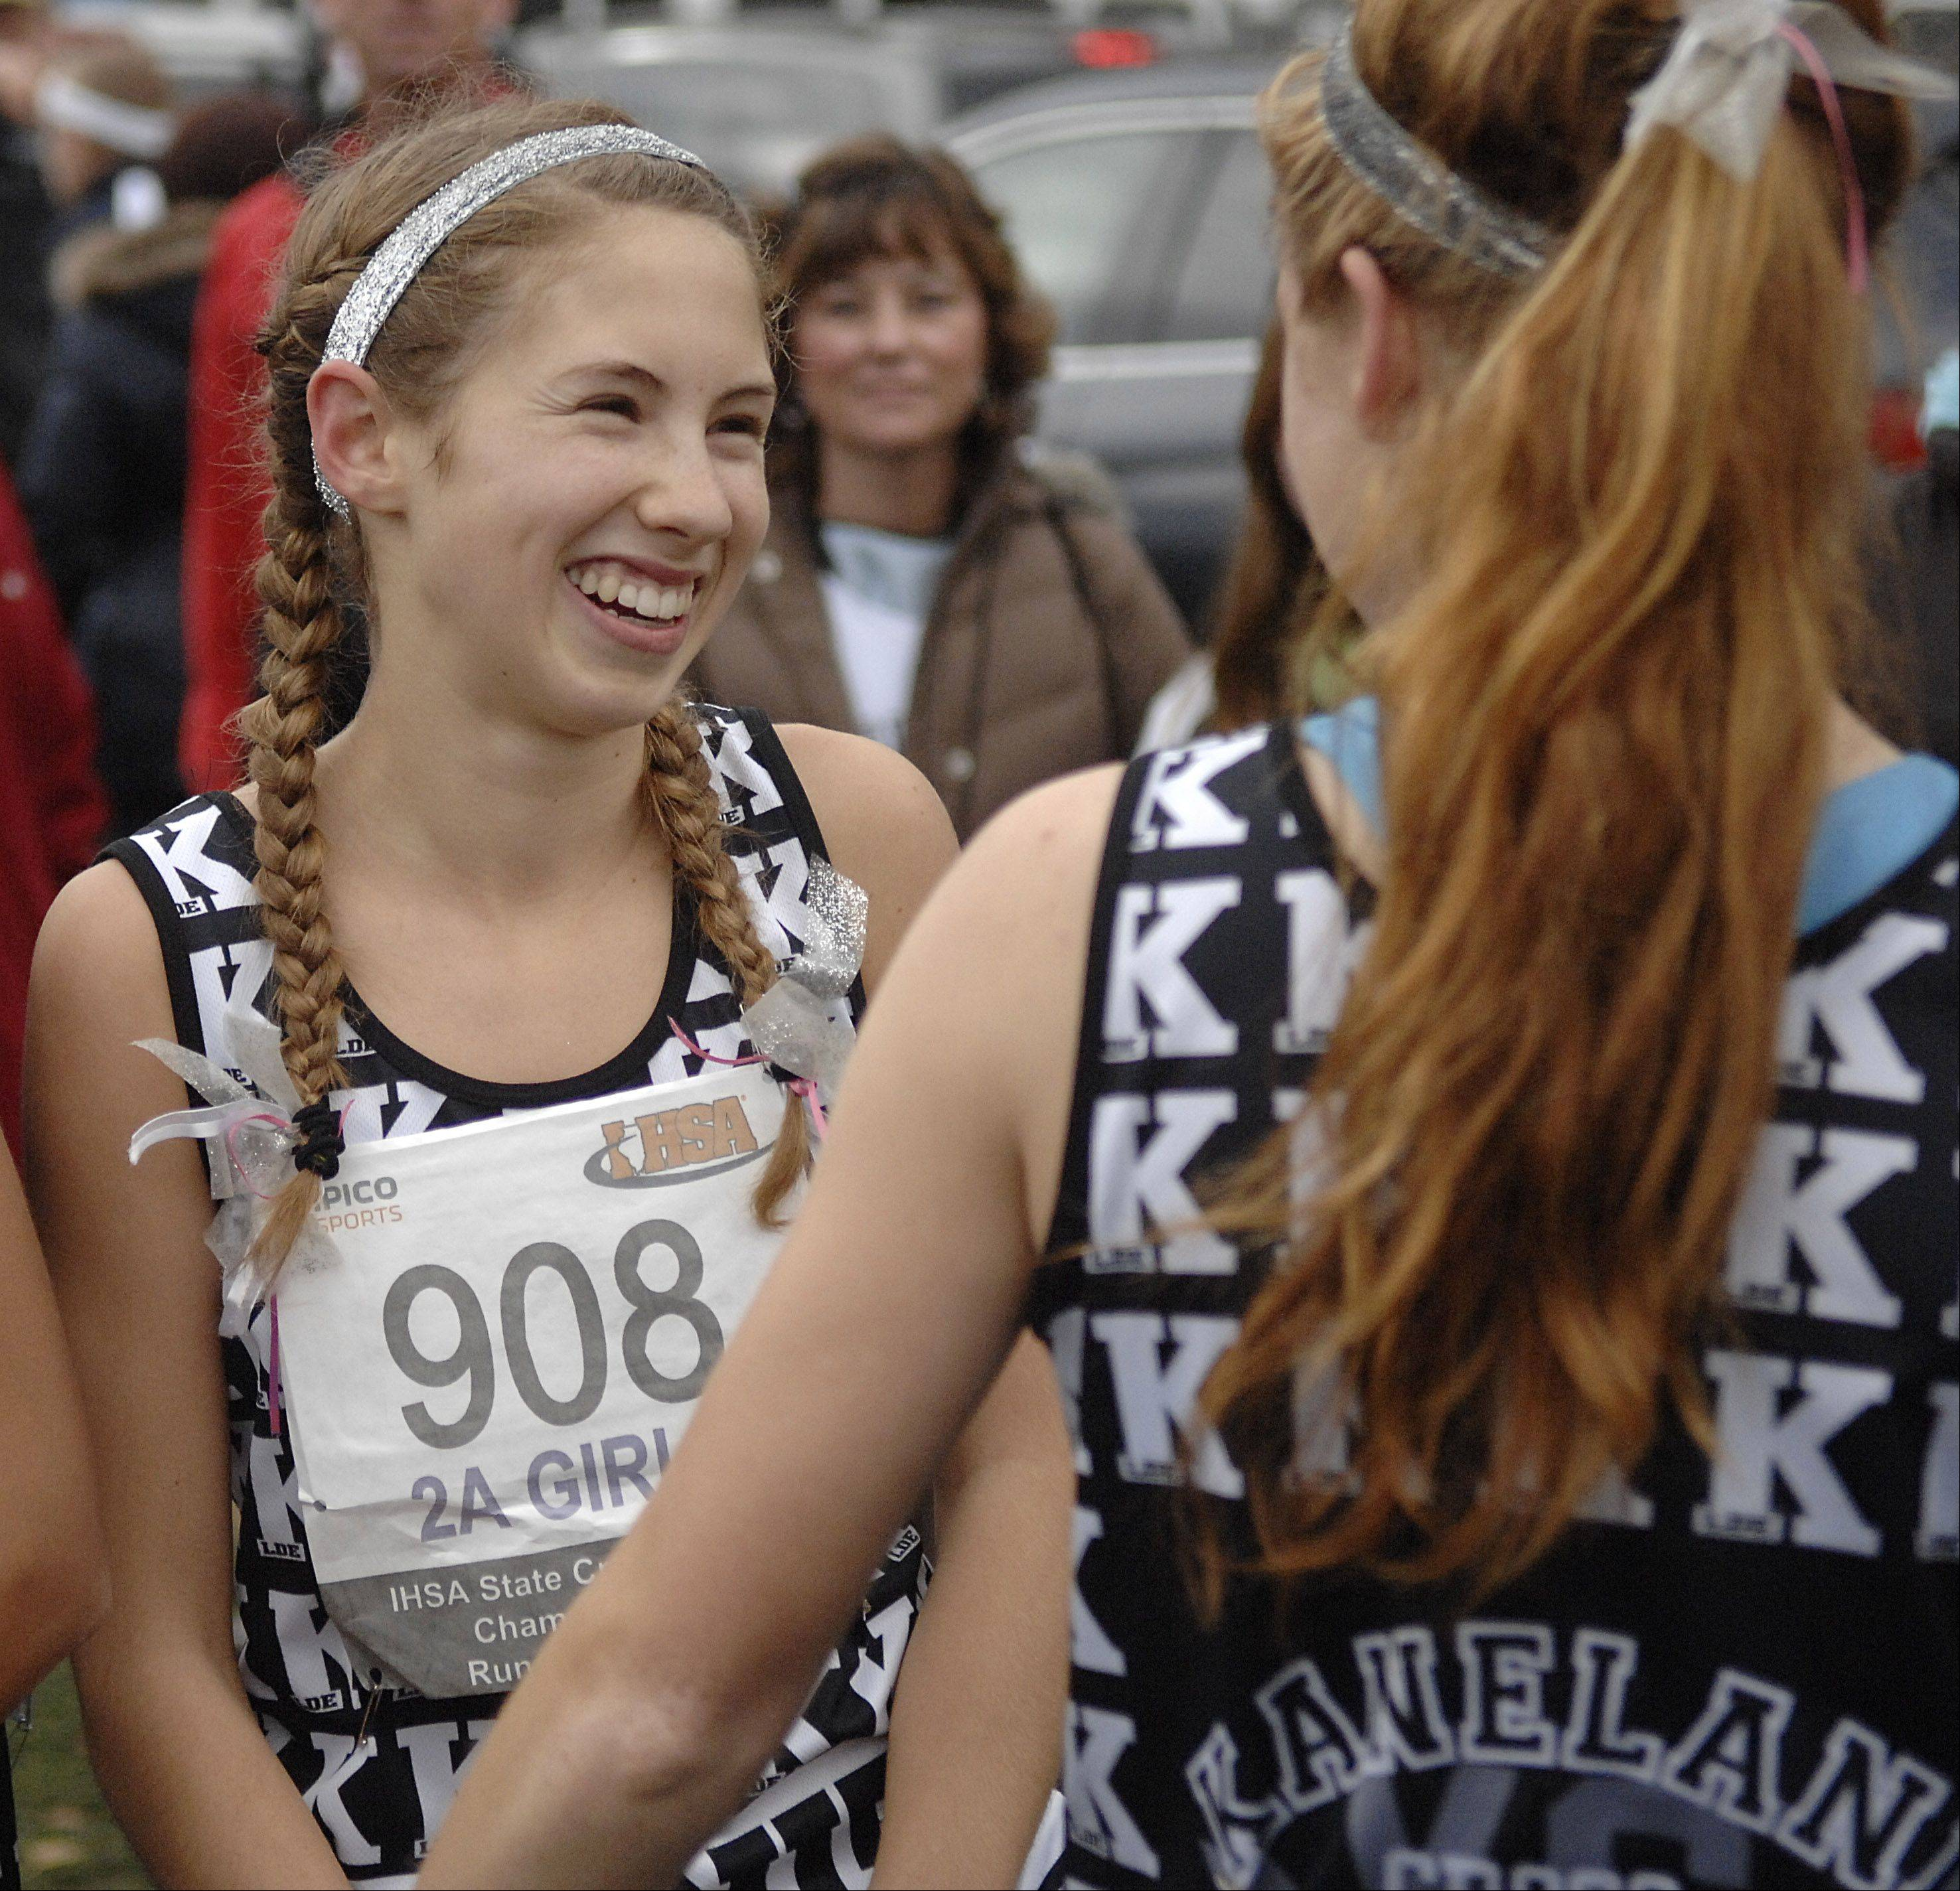 Kaneland's Victoria Clinton is congratulated by teammate Aislinn Losdwig after winning the 2A state cross country final in Peoria on Saturday, November 3.